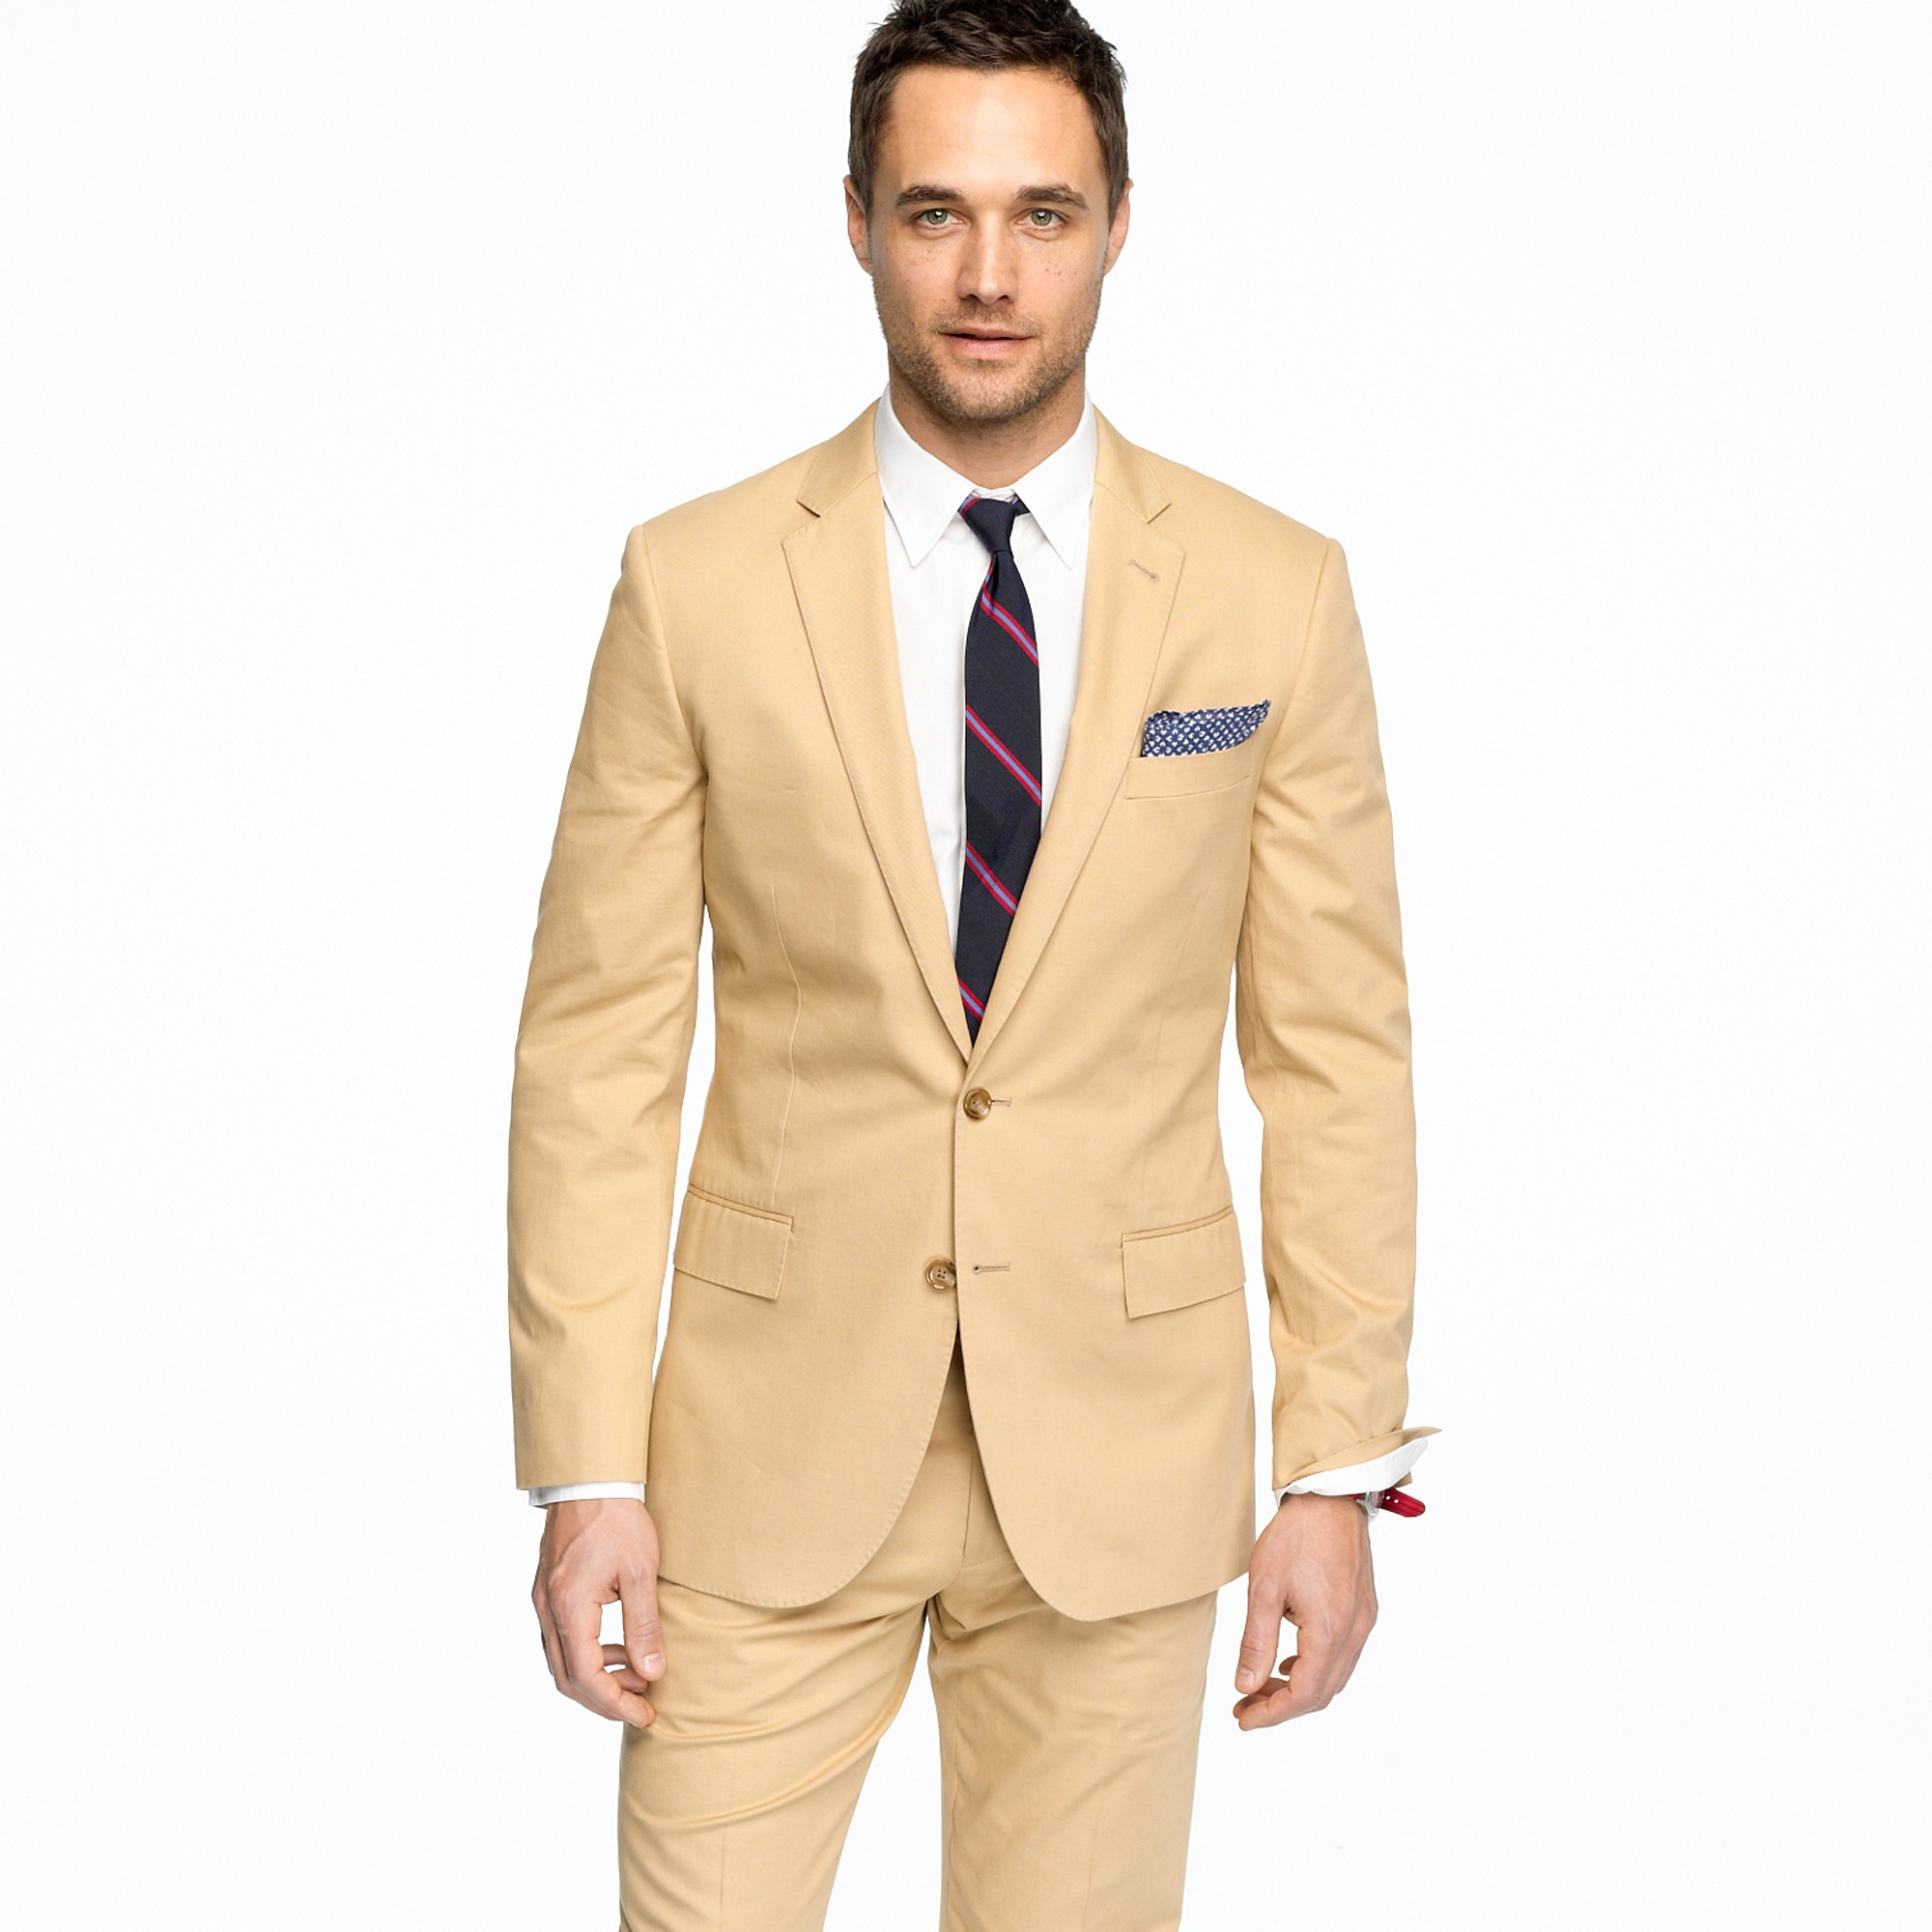 J.crew Ludlow Two-button Suit Jacket with Double-vented Back in